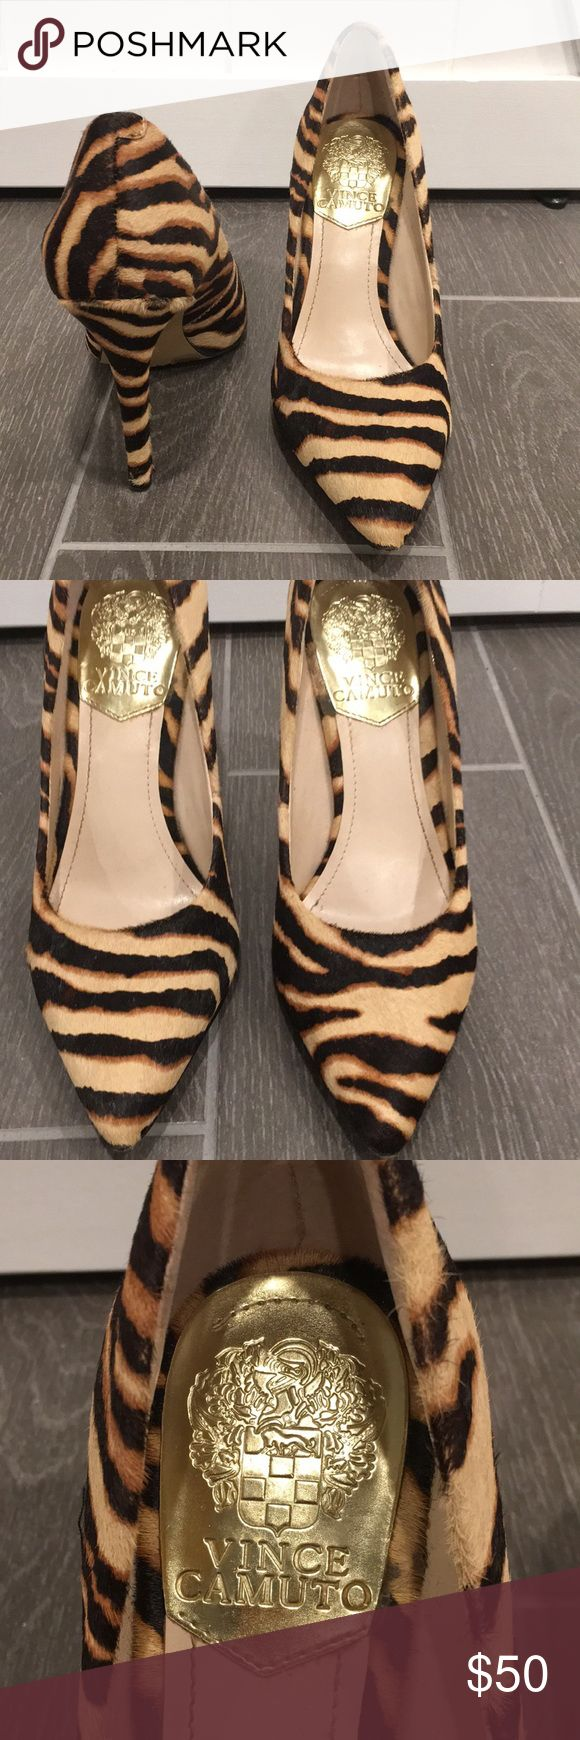 """VINCE CAMUTO Zebra Heel Pointed zebra print heel  Approx 4"""" heel  Worn once   Mint condition except one discoloration on the back of right heel as pictured Vince Camuto Shoes Heels"""